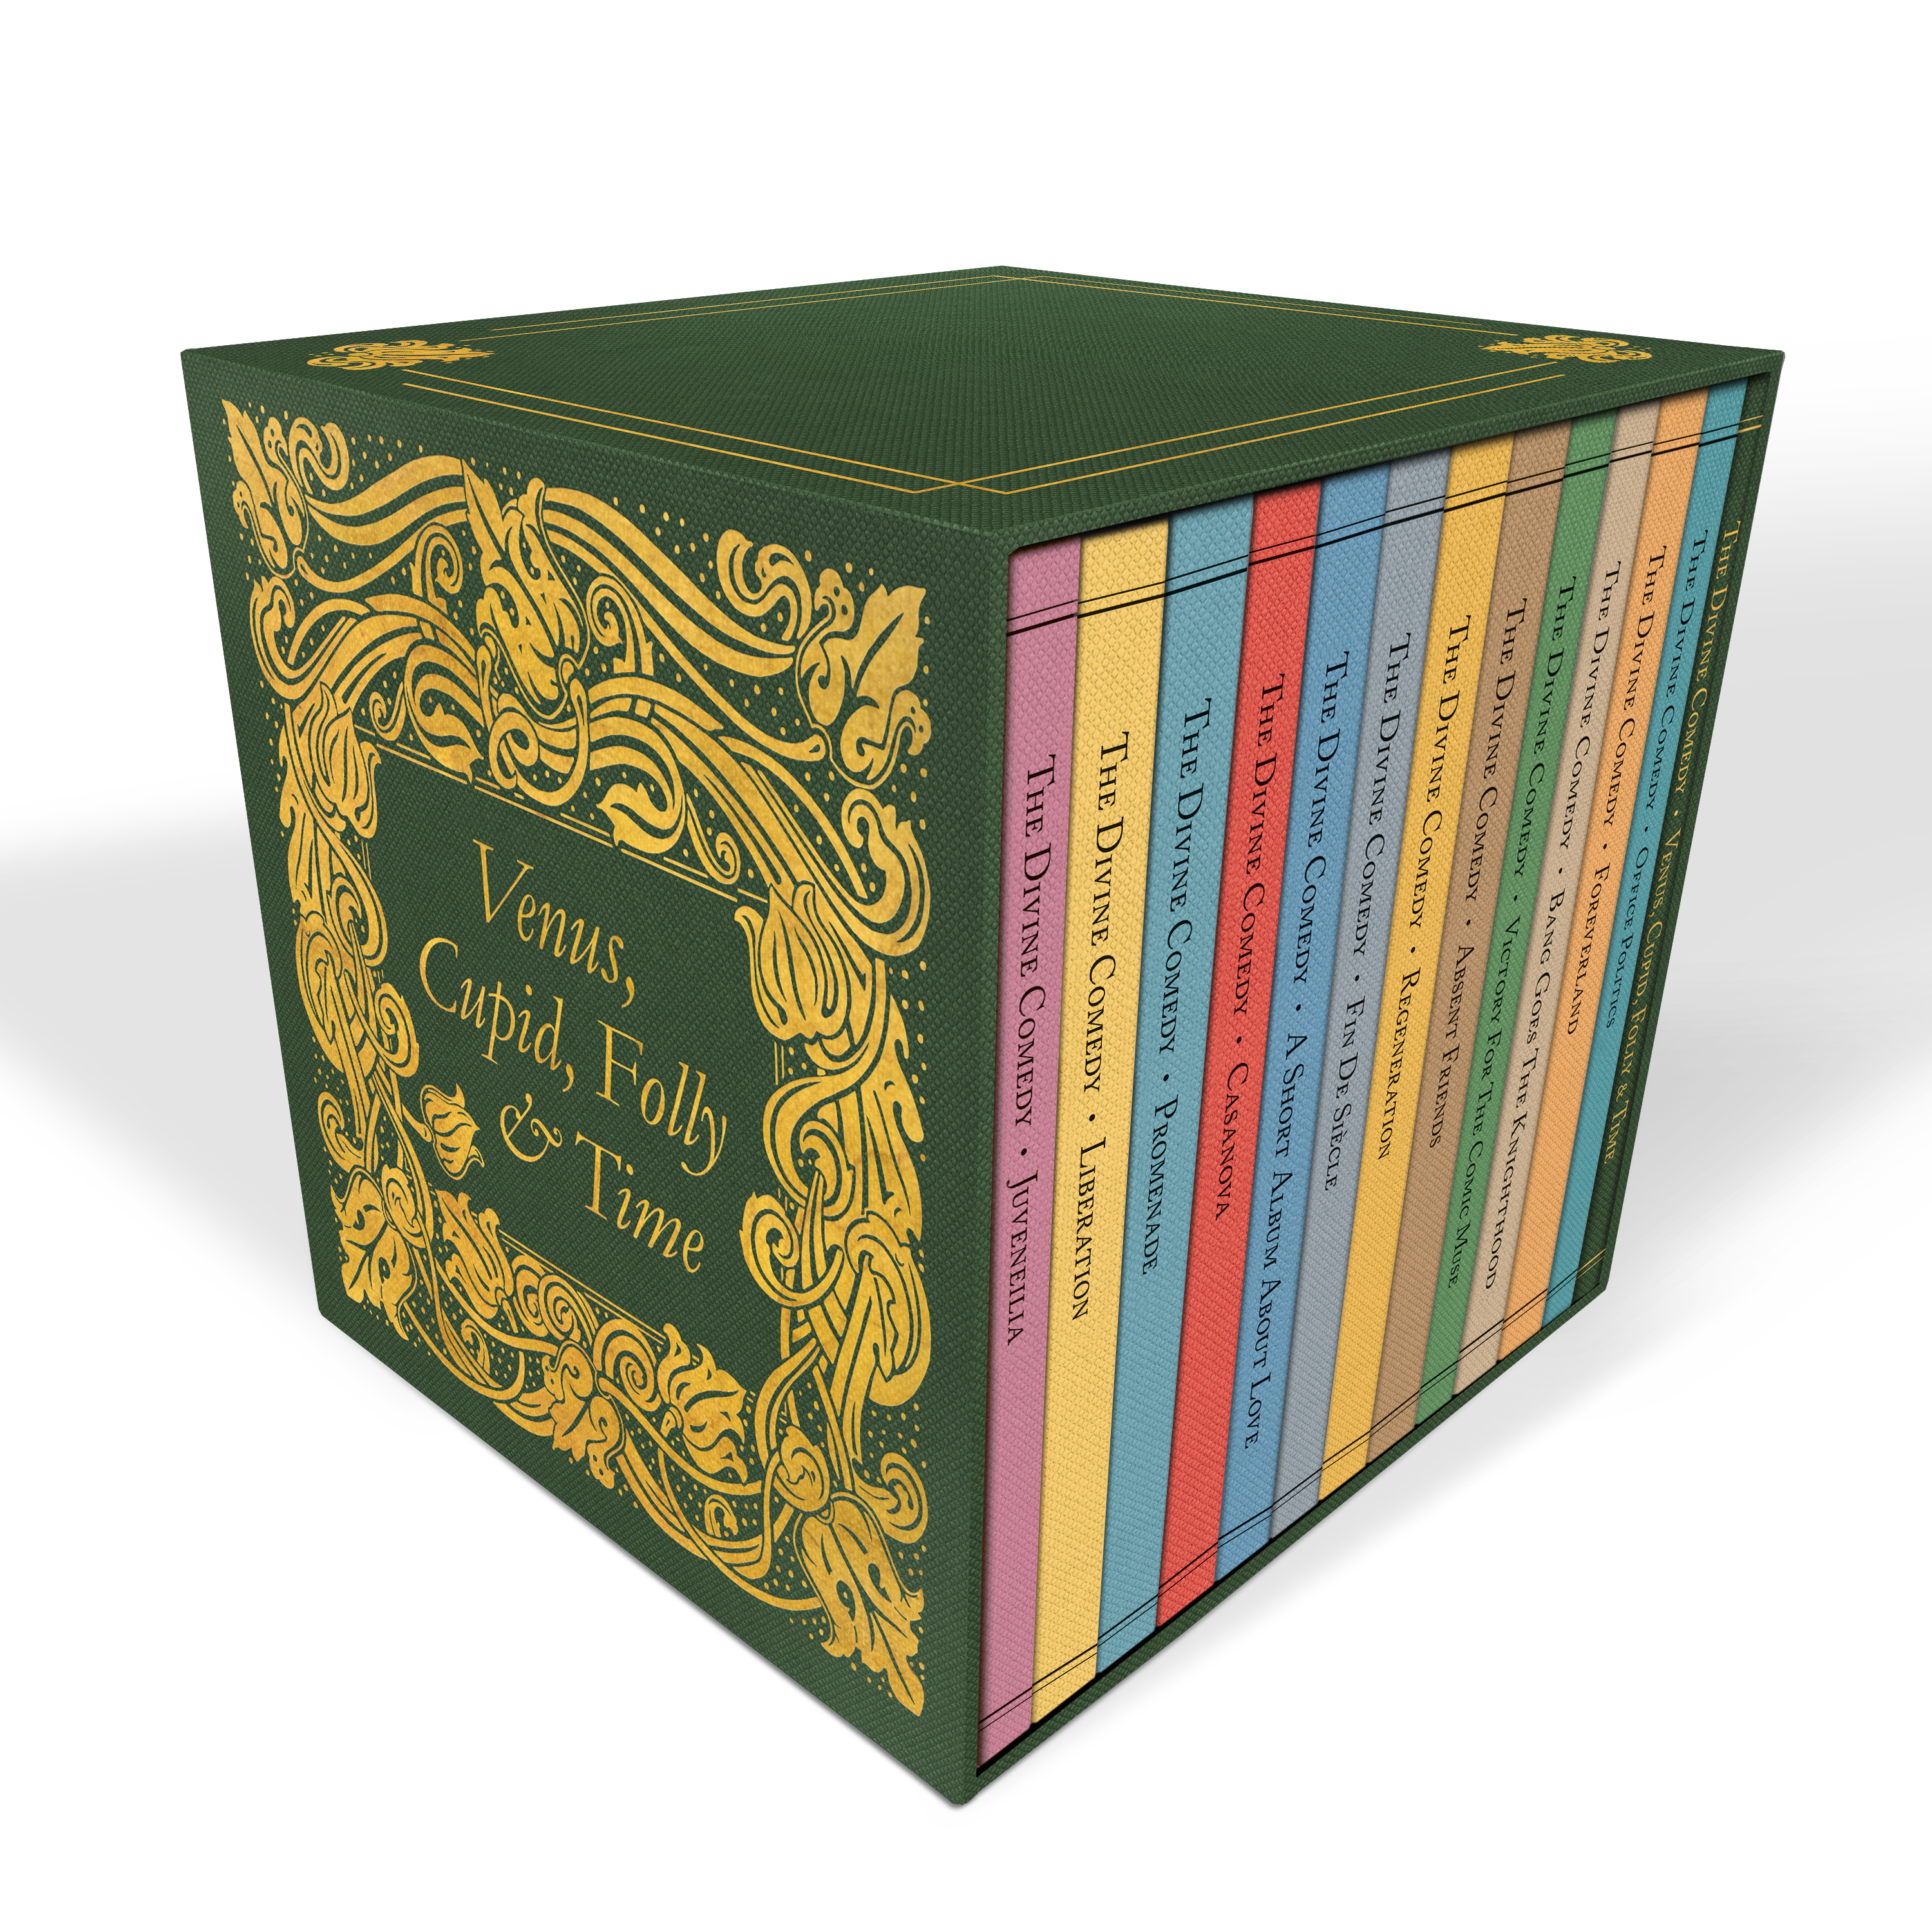 Venus, Cupid, Folly and Time - Thirty Years of The Divine Comedy CD Boxset